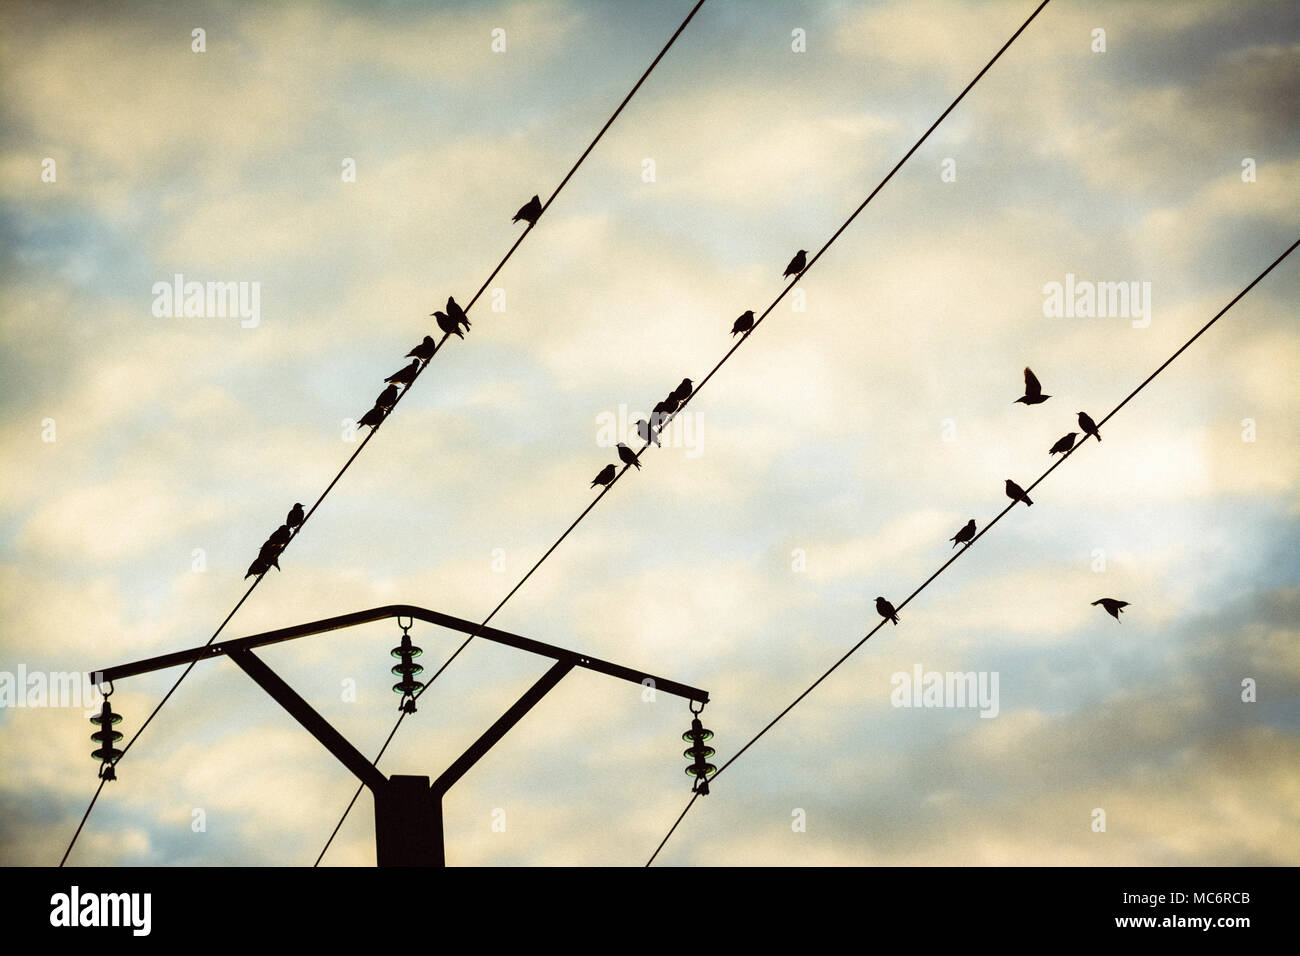 Birds on a telephone pole wire, Puy de Dome, Auvergne, France, Europe - Stock Image